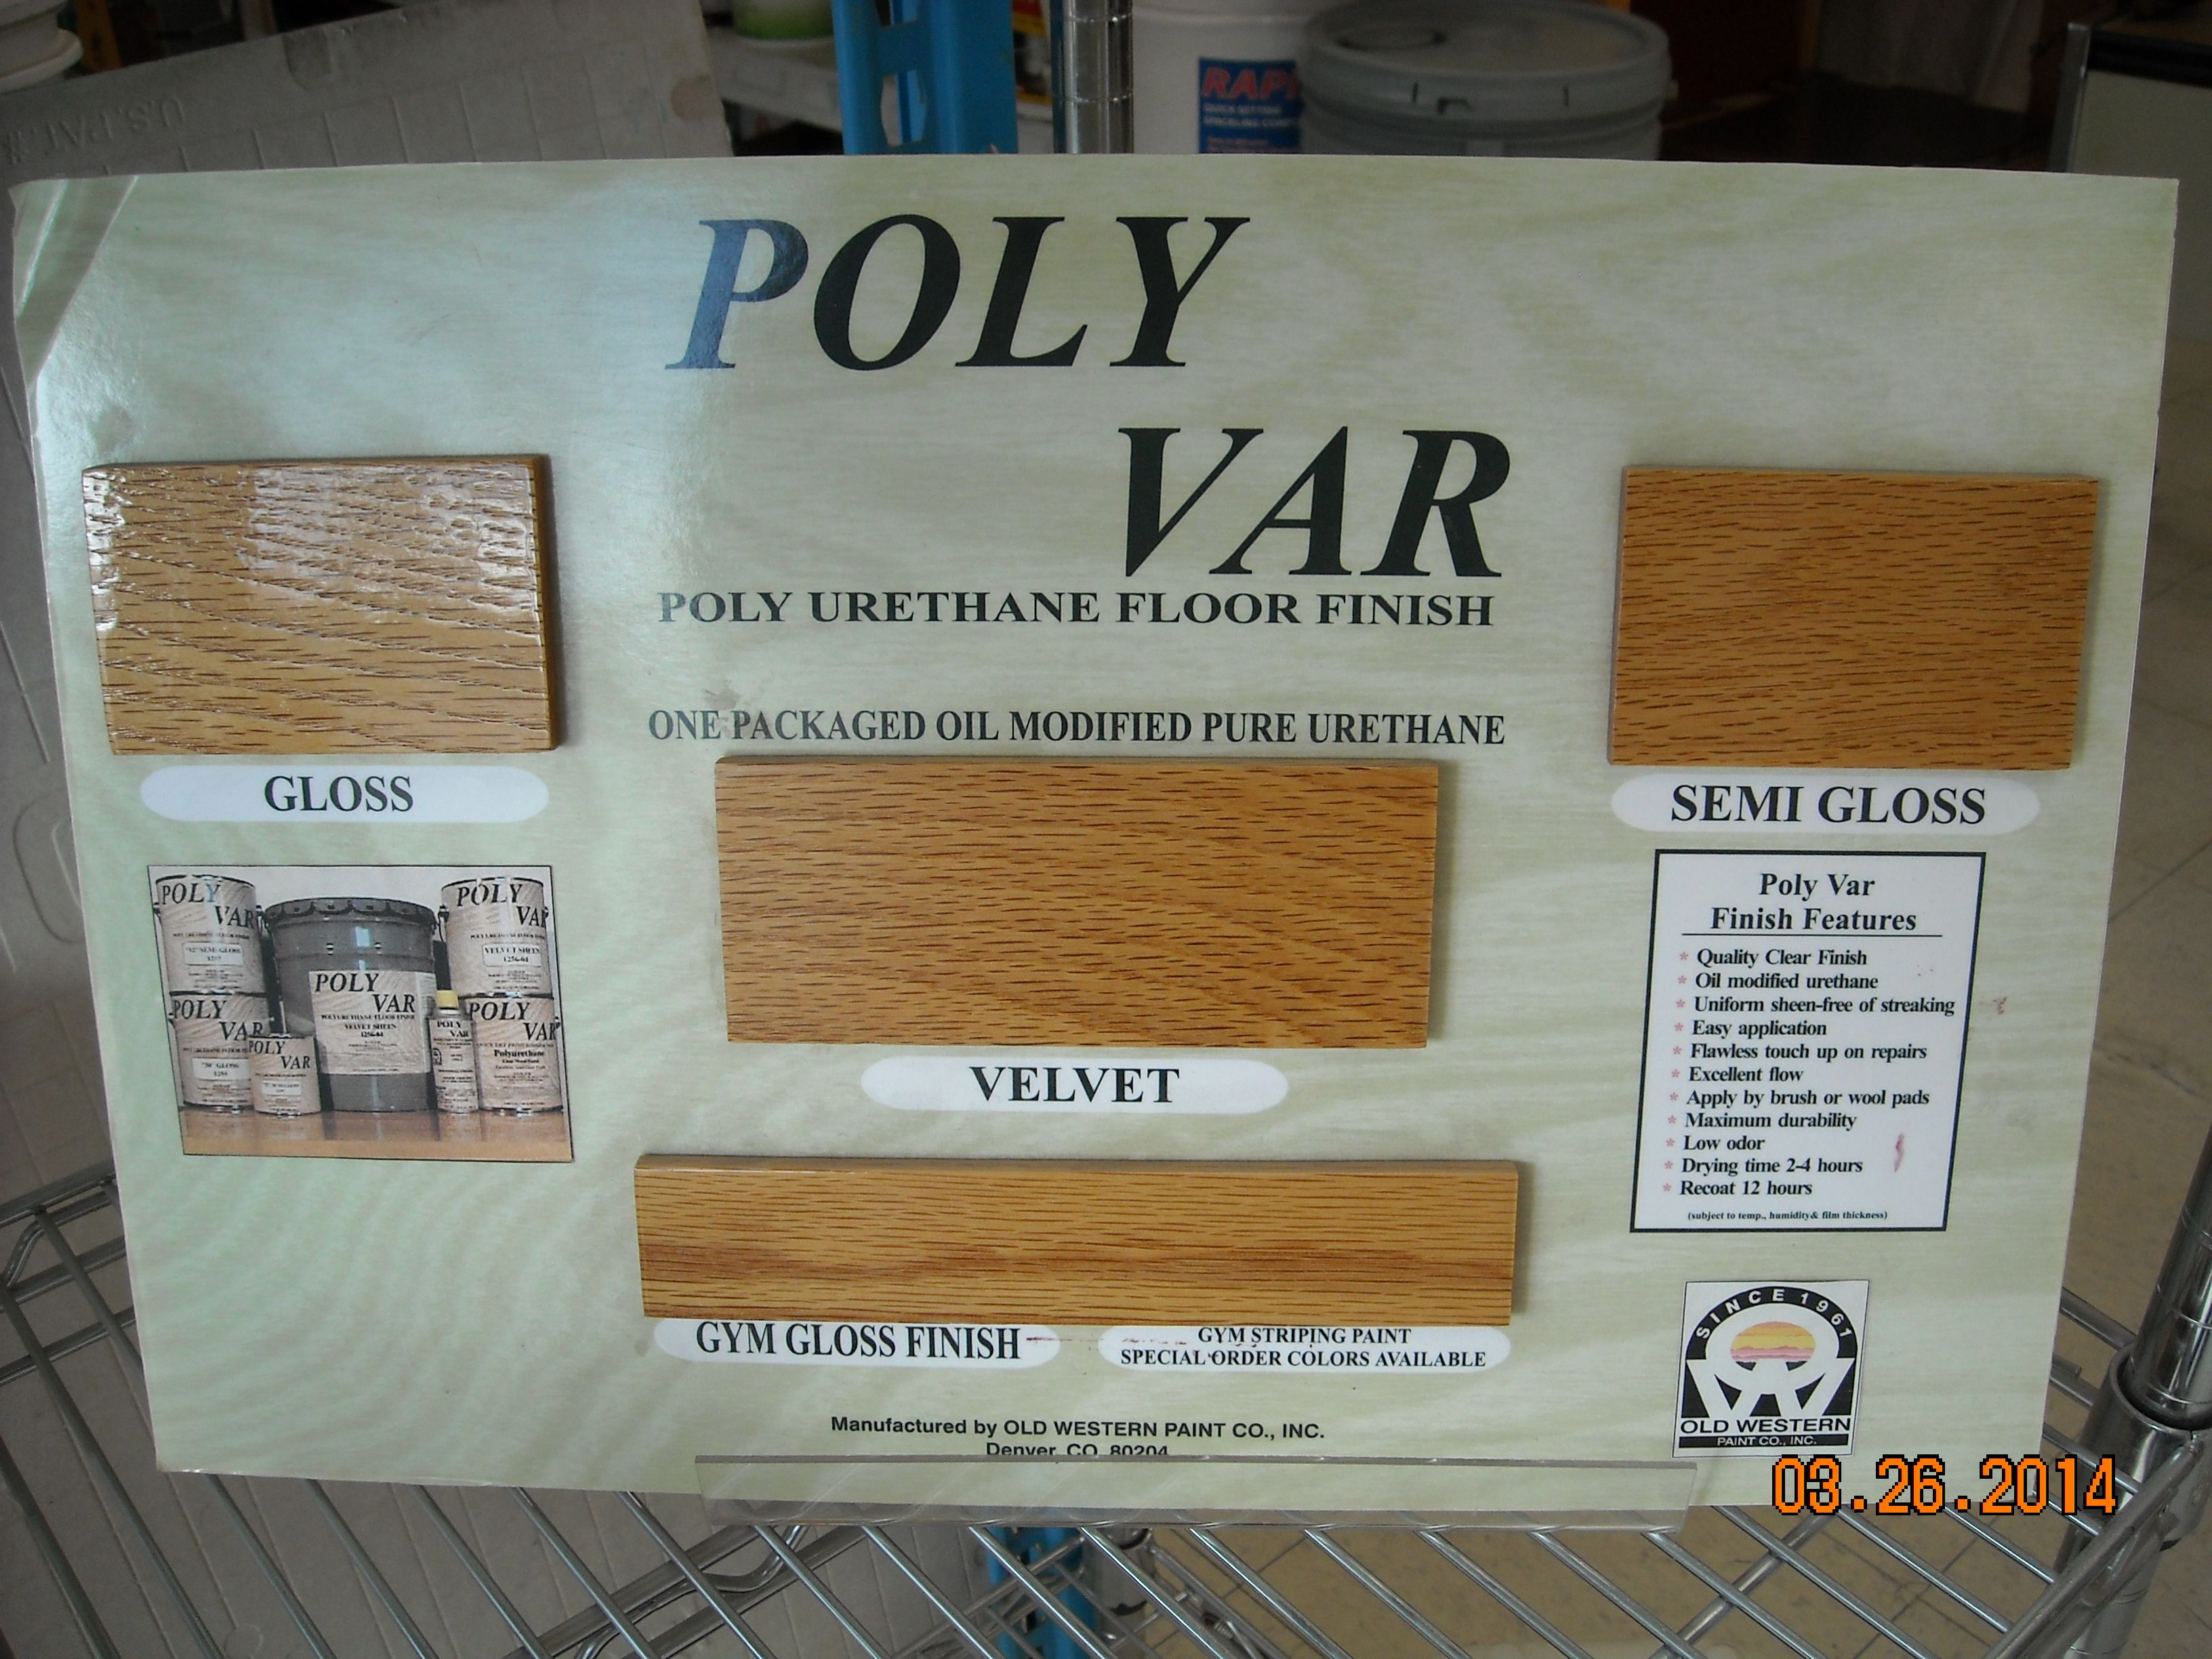 Poly Var Is An Oil Modified 100 Pure Urethane That Is A Clear Durable Interior Polyurethane Floor Finish For Use On All Wood Flo Fun With Stain Polyu